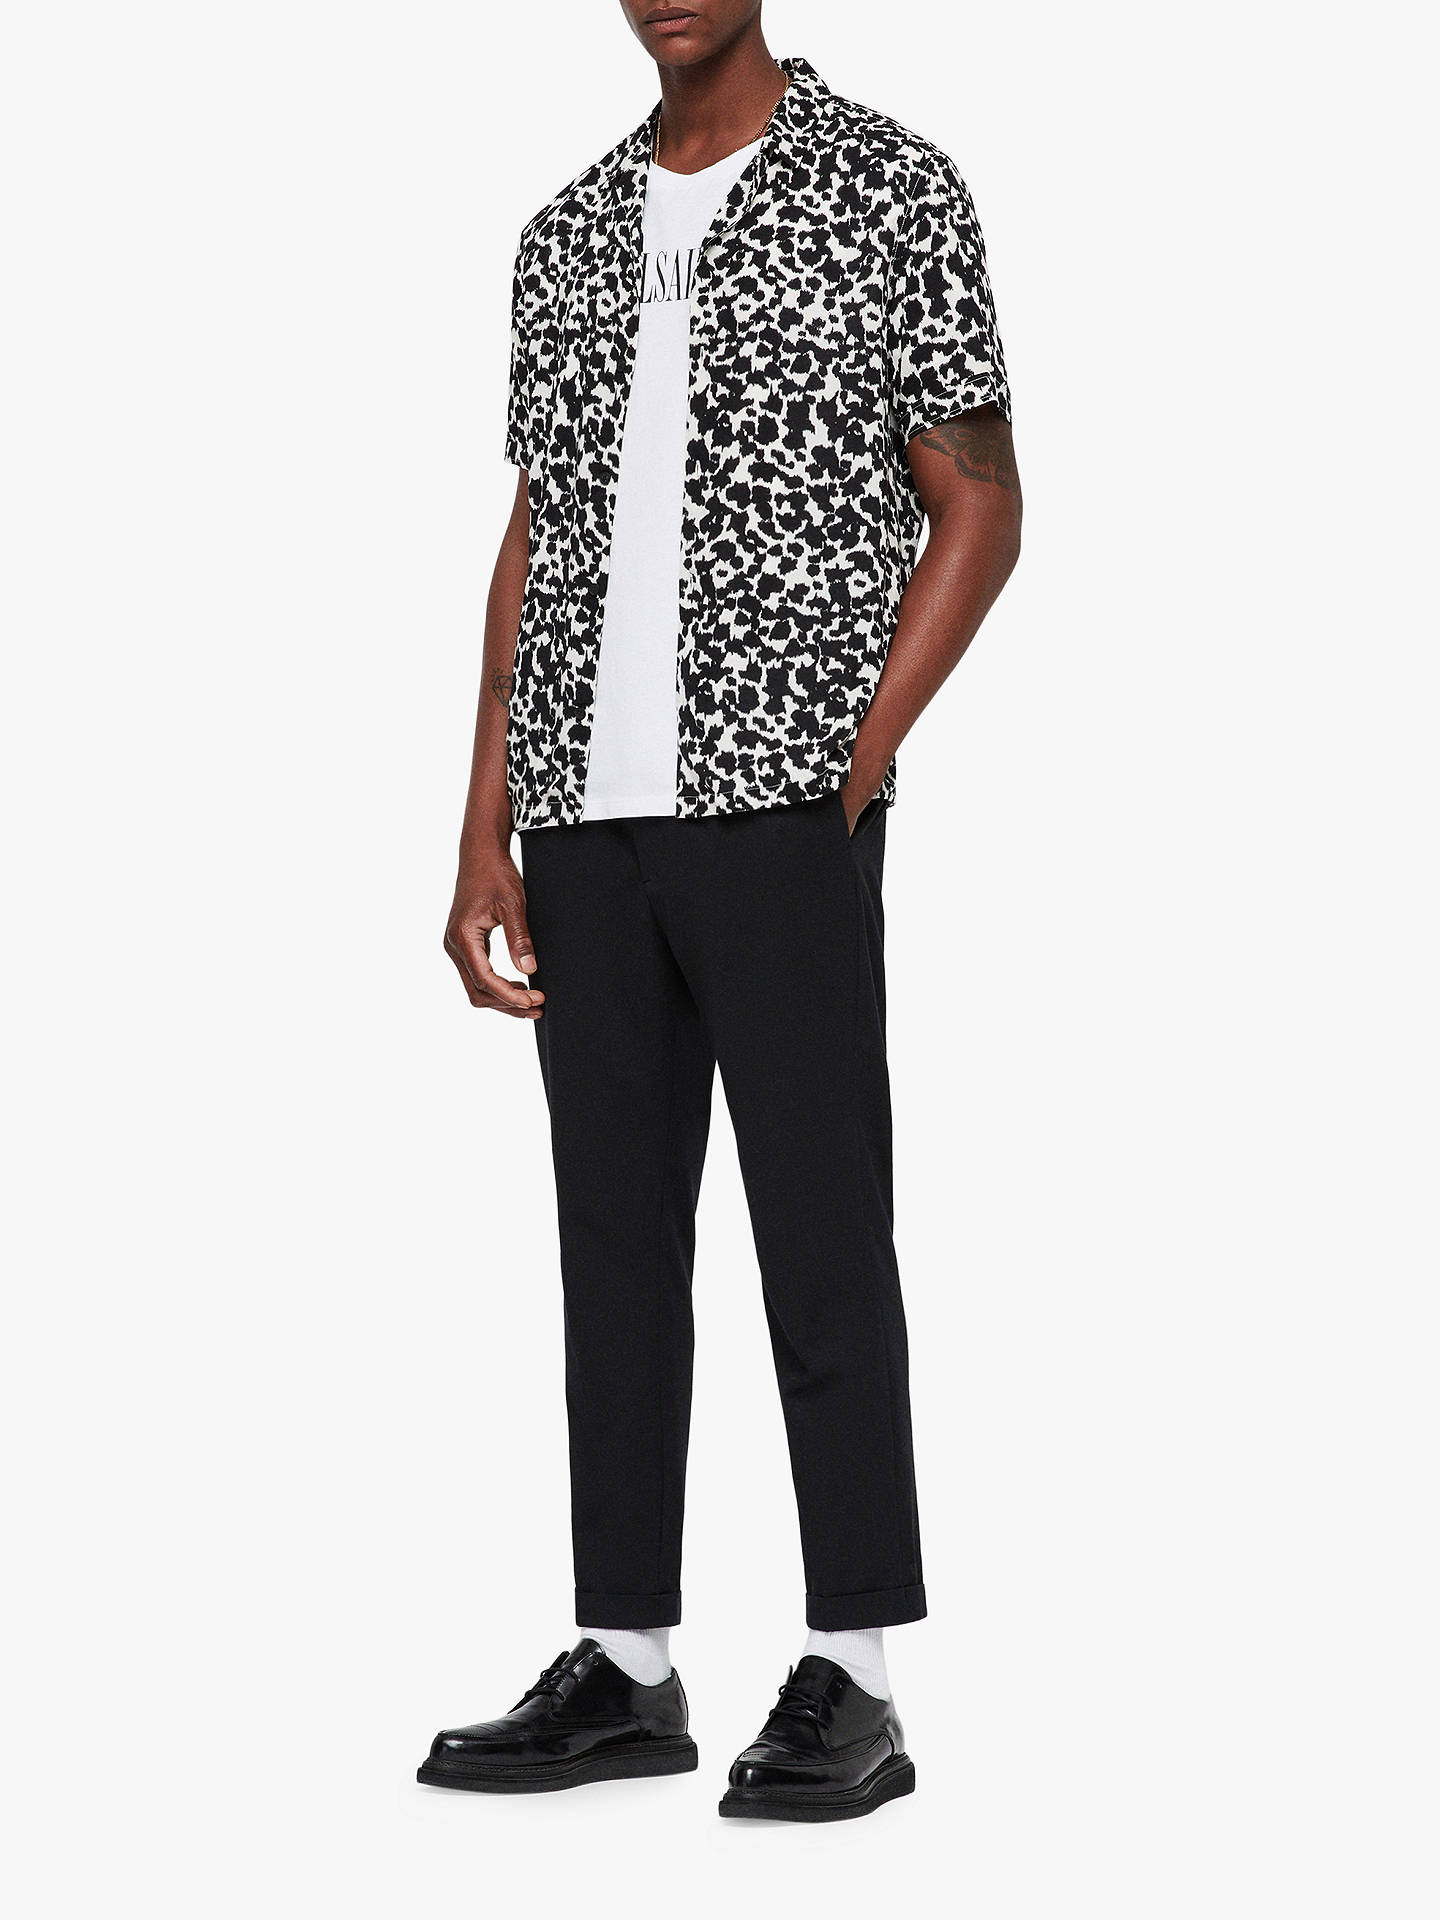 Buy AllSaints Sigfried Animal Print Shirt, Ecru White/Black, L Online at johnlewis.com